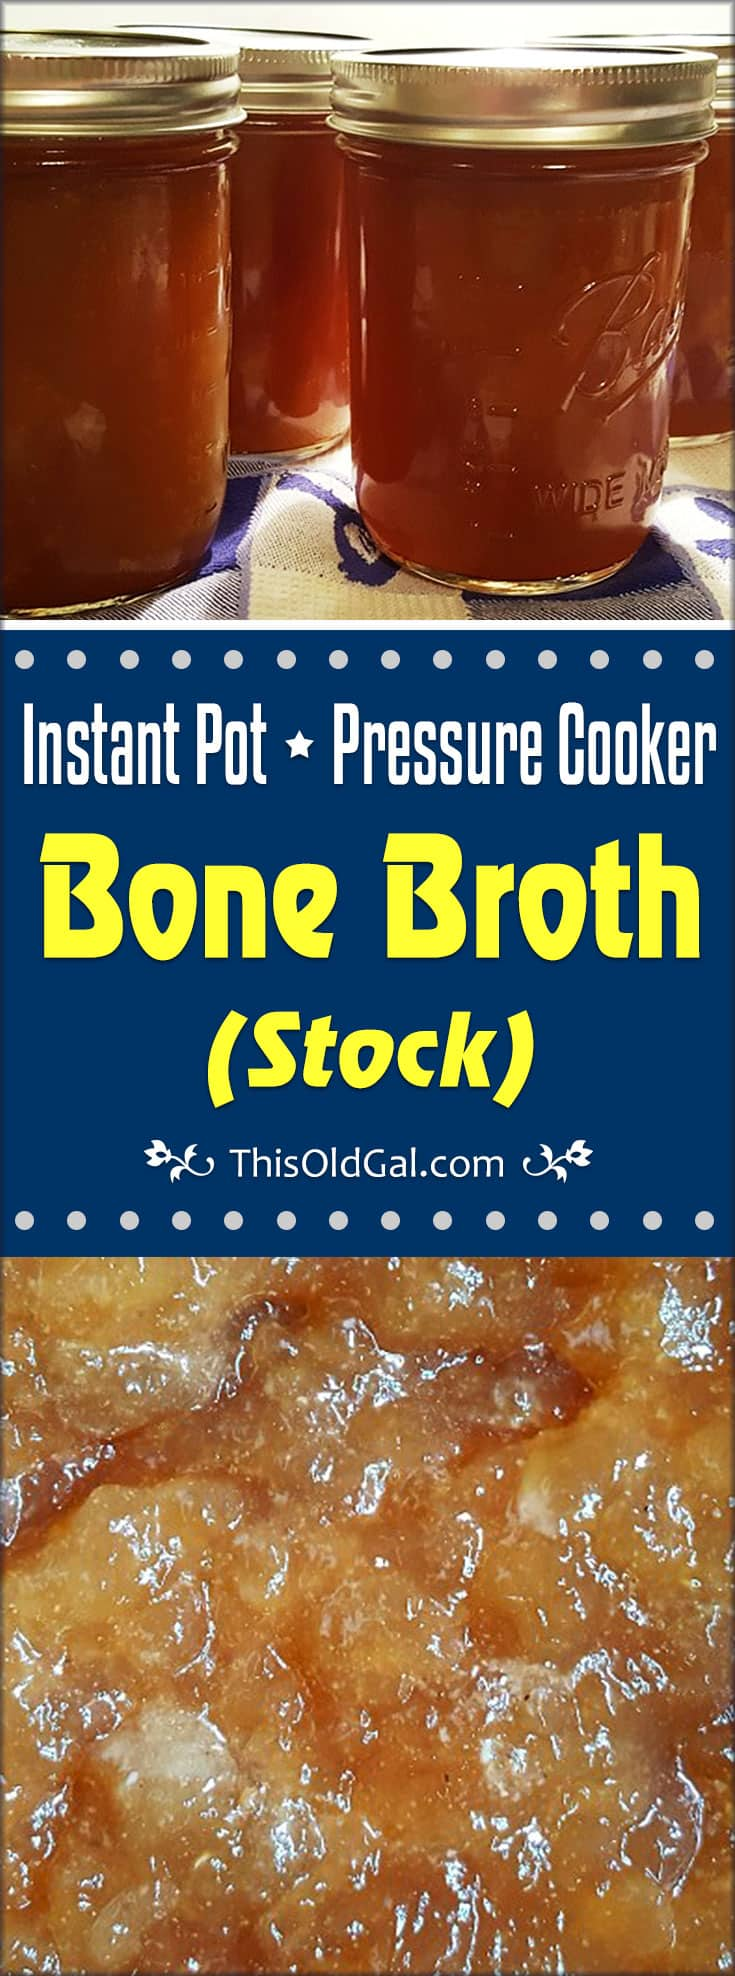 Pressure Cooker Bone Broth (Stock)